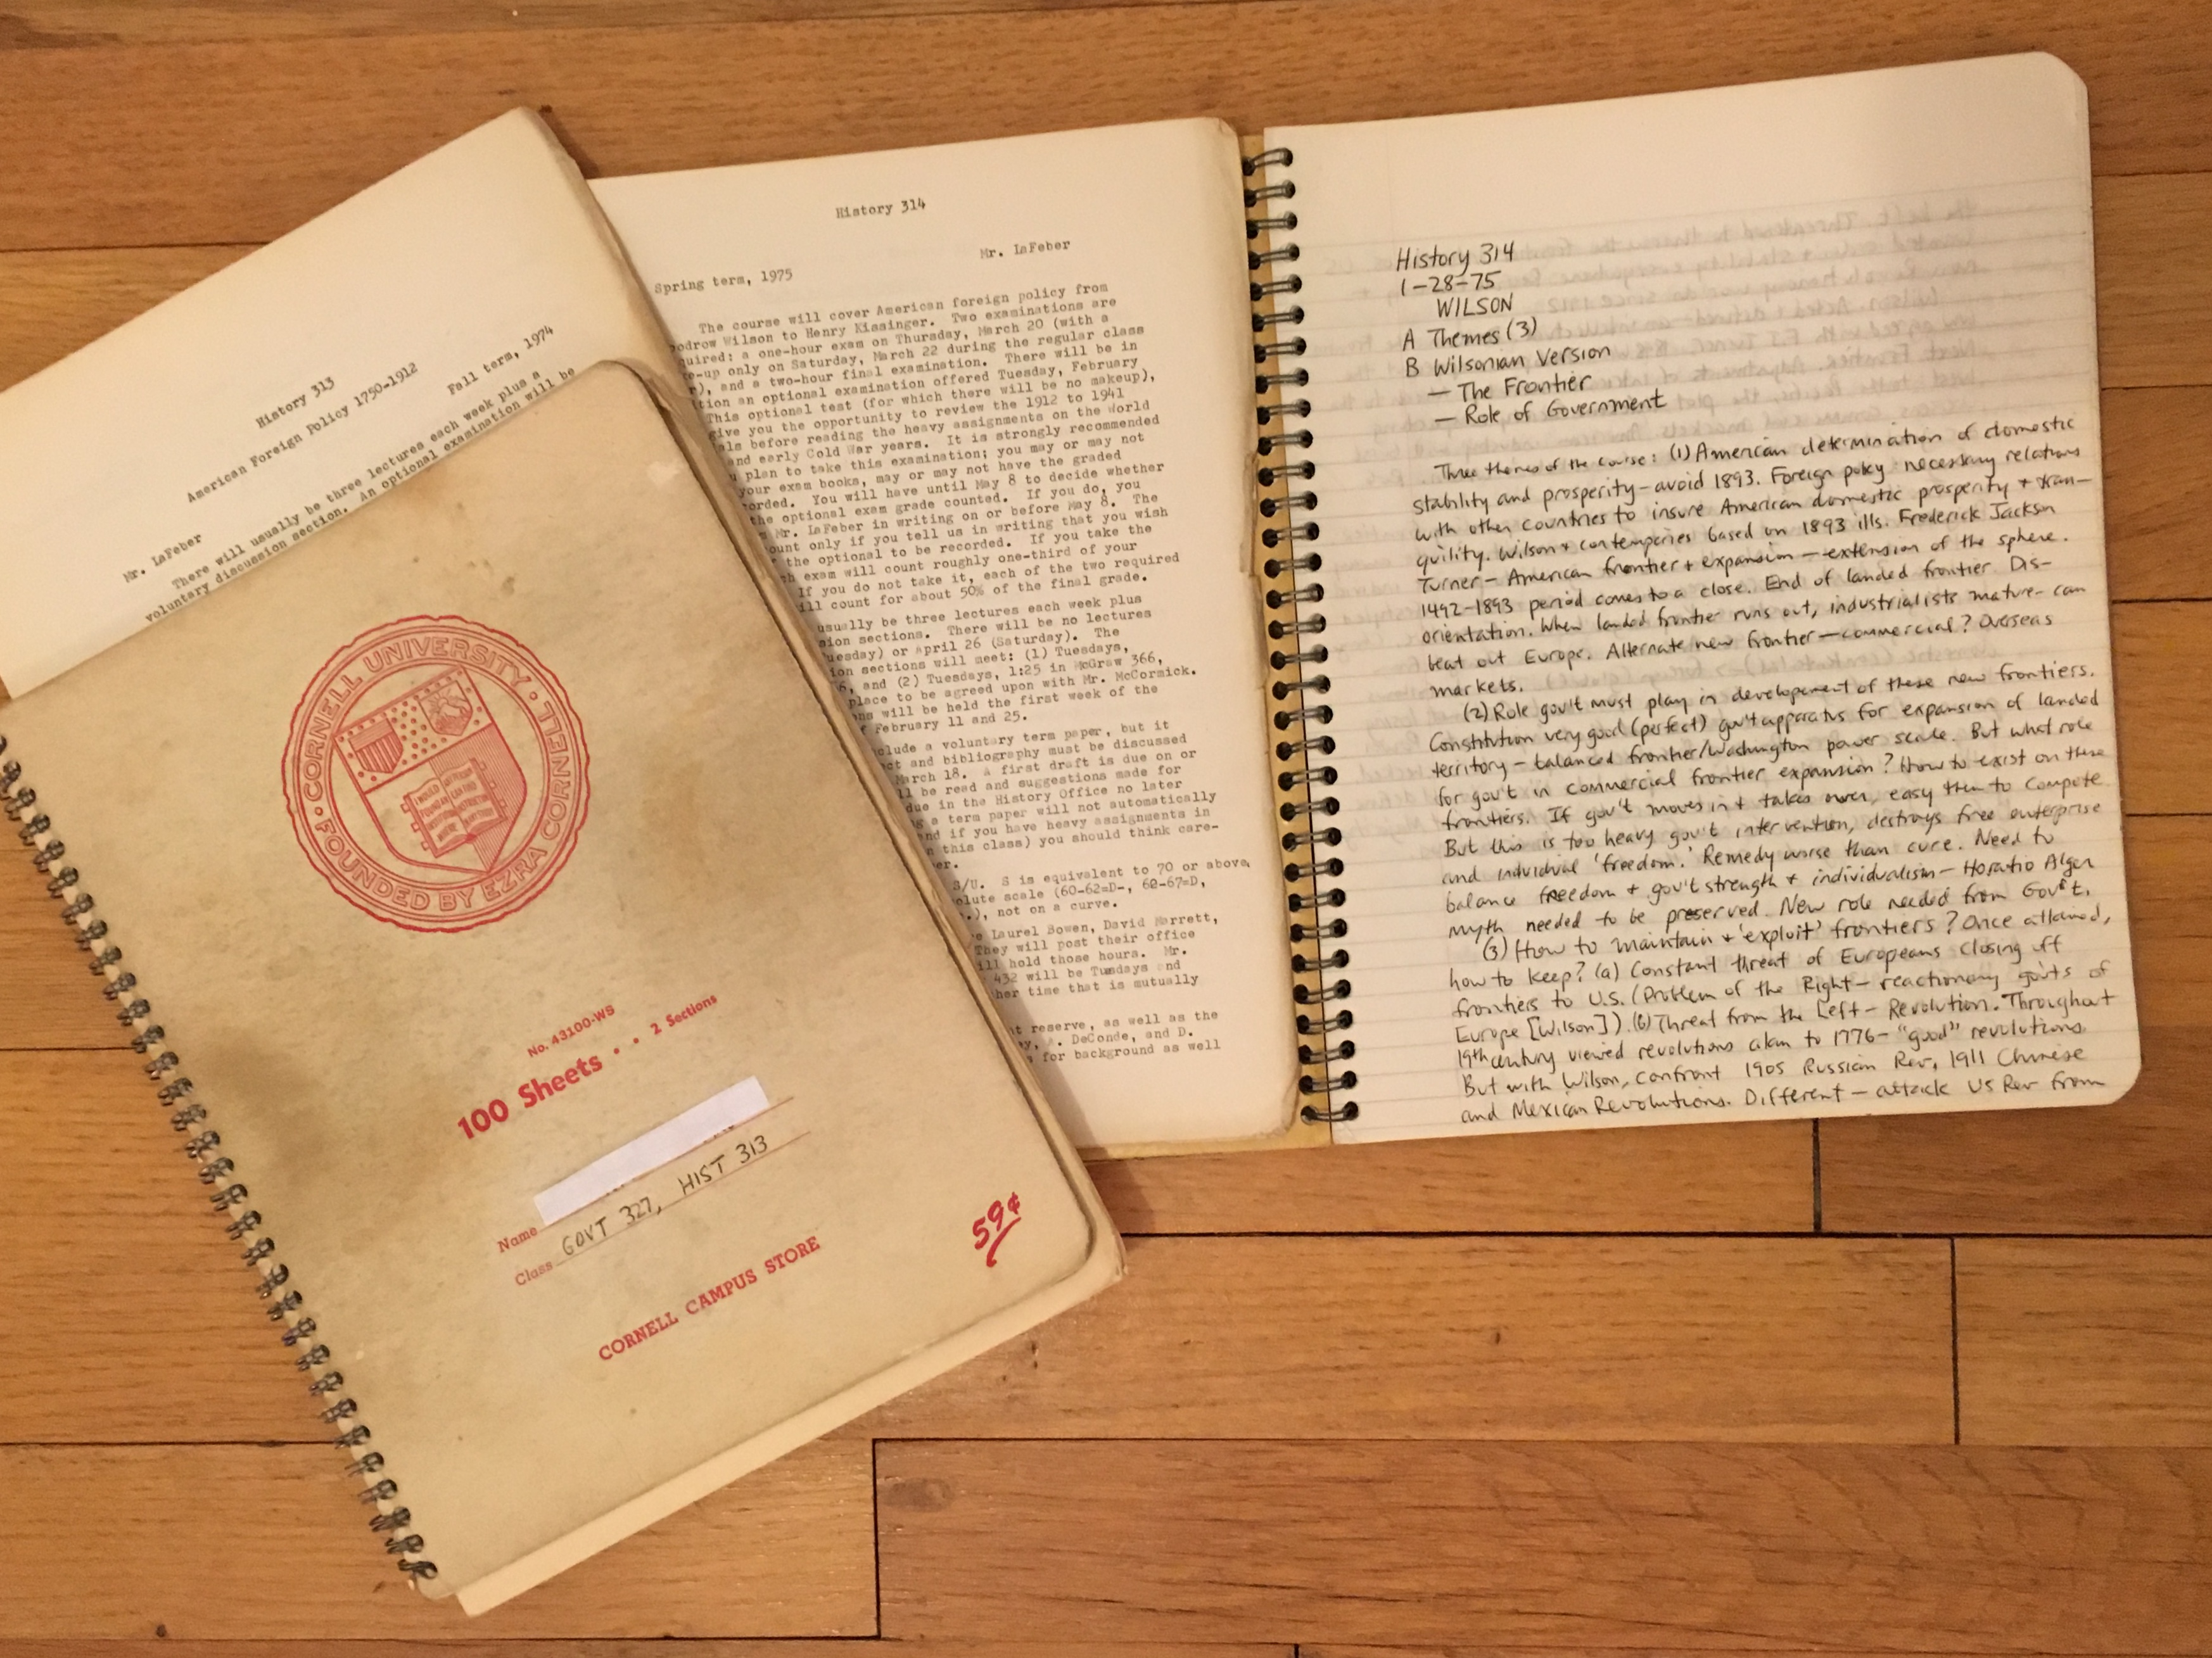 File:Cornell University notebooks for History 313 and 314